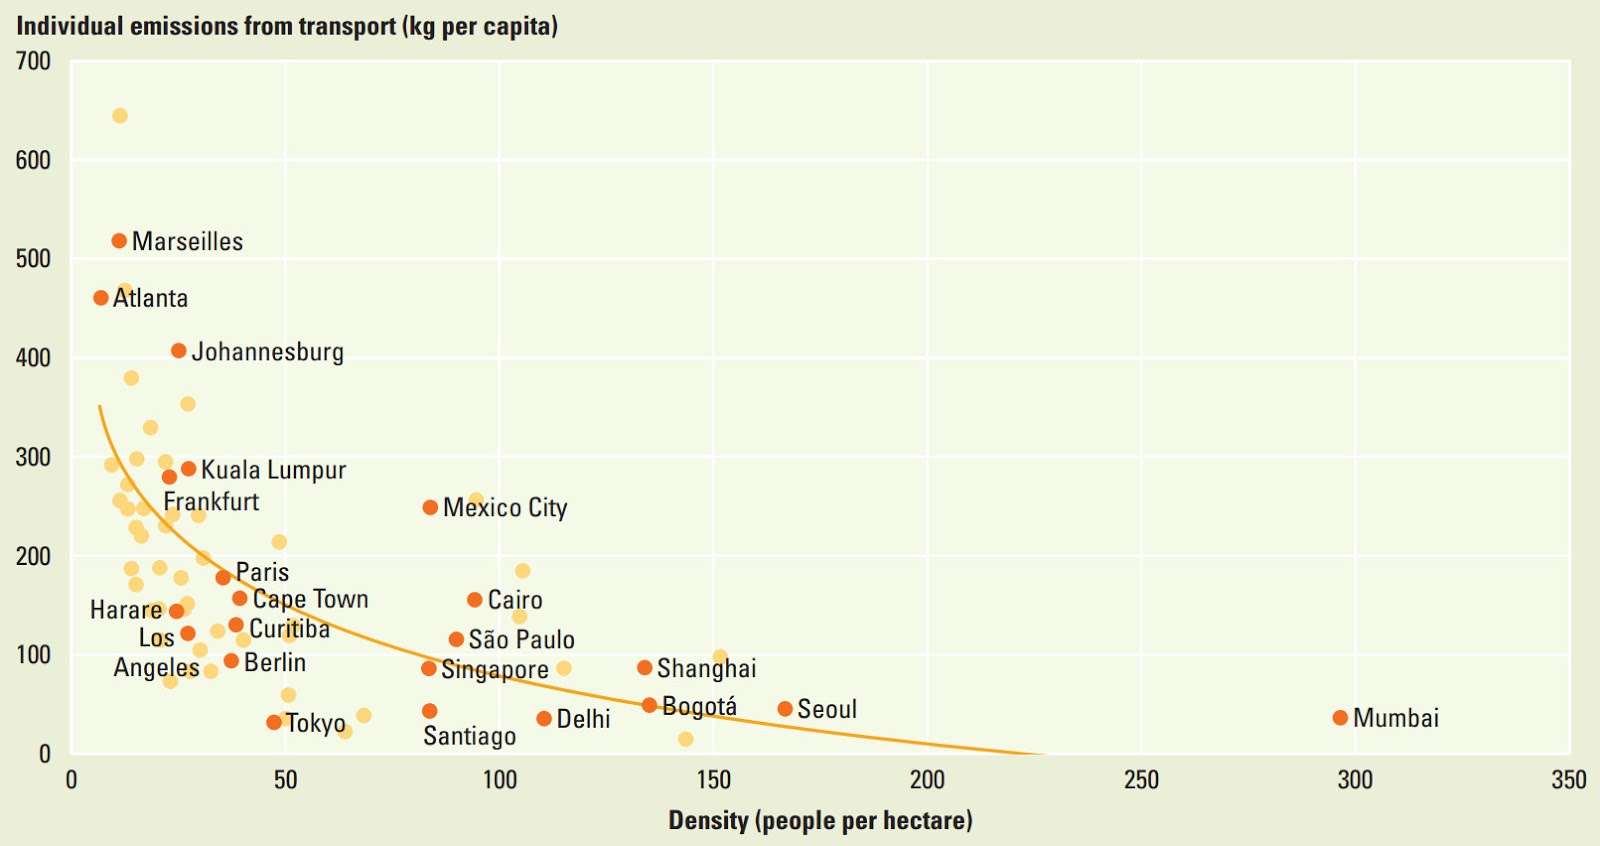 Emissions from transport are much lower in denser cities